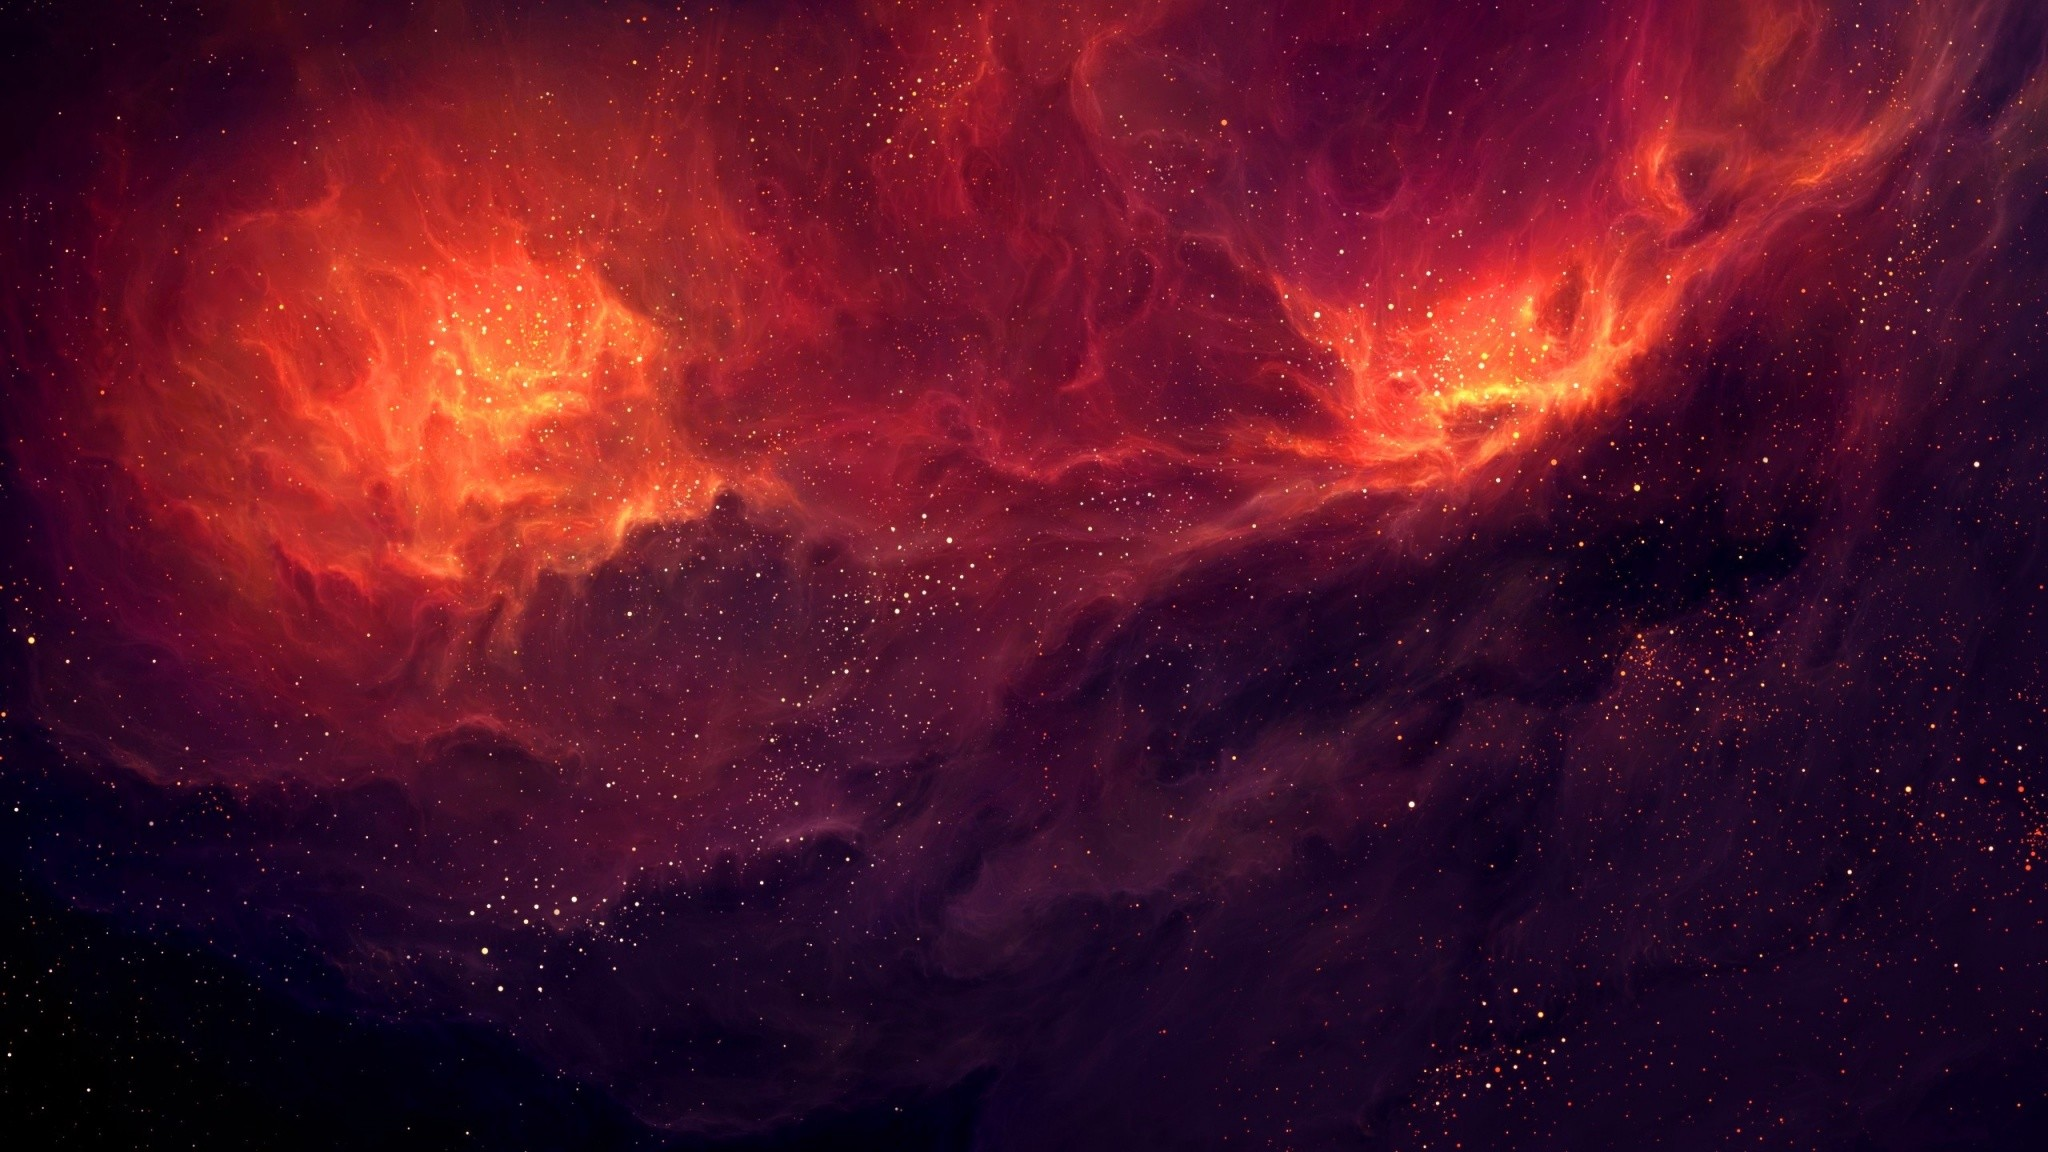 Space star background 50 images for 2048x1152 wallpaper